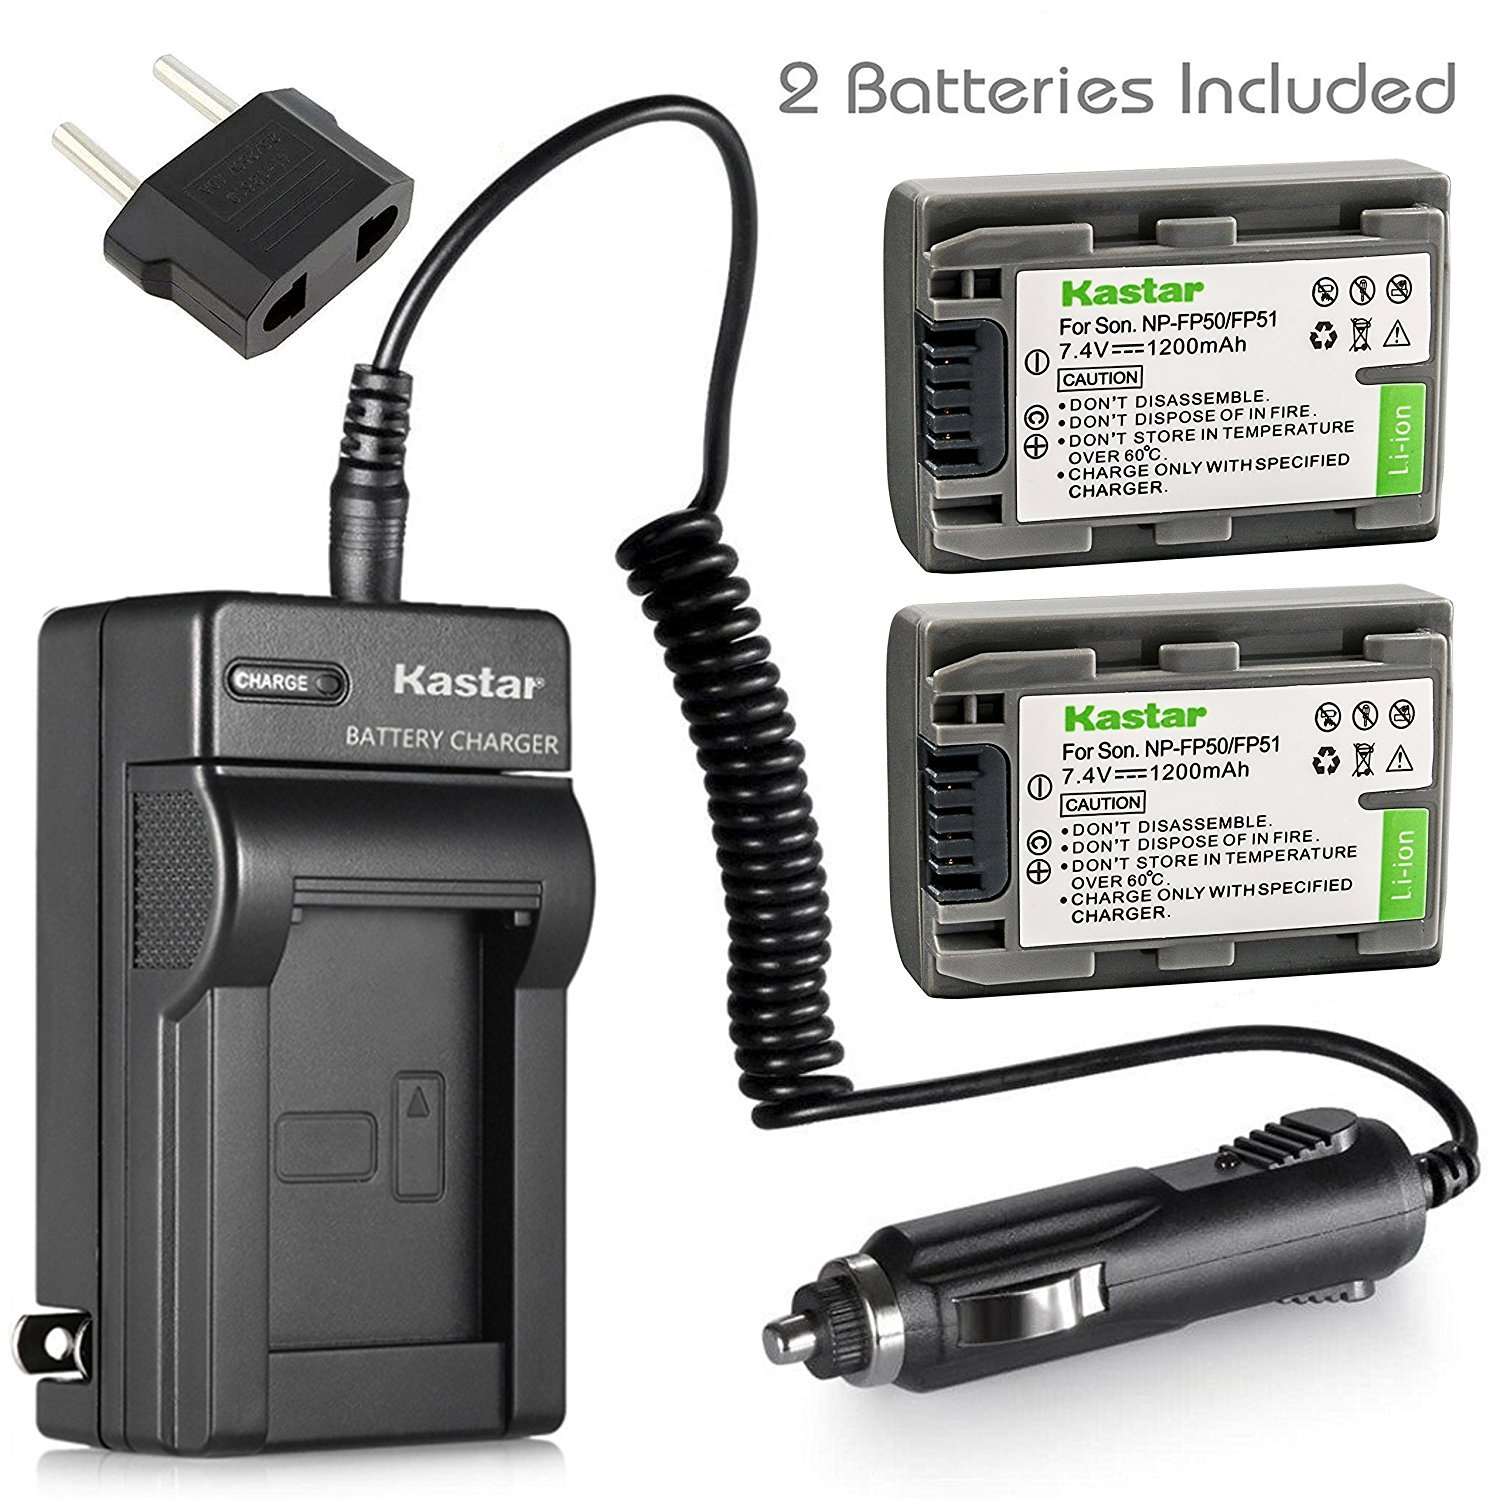 Kastar 2Pcs Battery and Charger for Sony NP-FP30 NP-FP50 NP-FP70 NP-FP90 and Sony DCR-DVD105 DCR-DVD202 DCR-DVD203 DCR-DVD205 DCR-DVD305 DCR-DVD403 DCR-DVD405 DCR-DVD505 DCR-DVD92 DCR-SR80 HDR-HC3